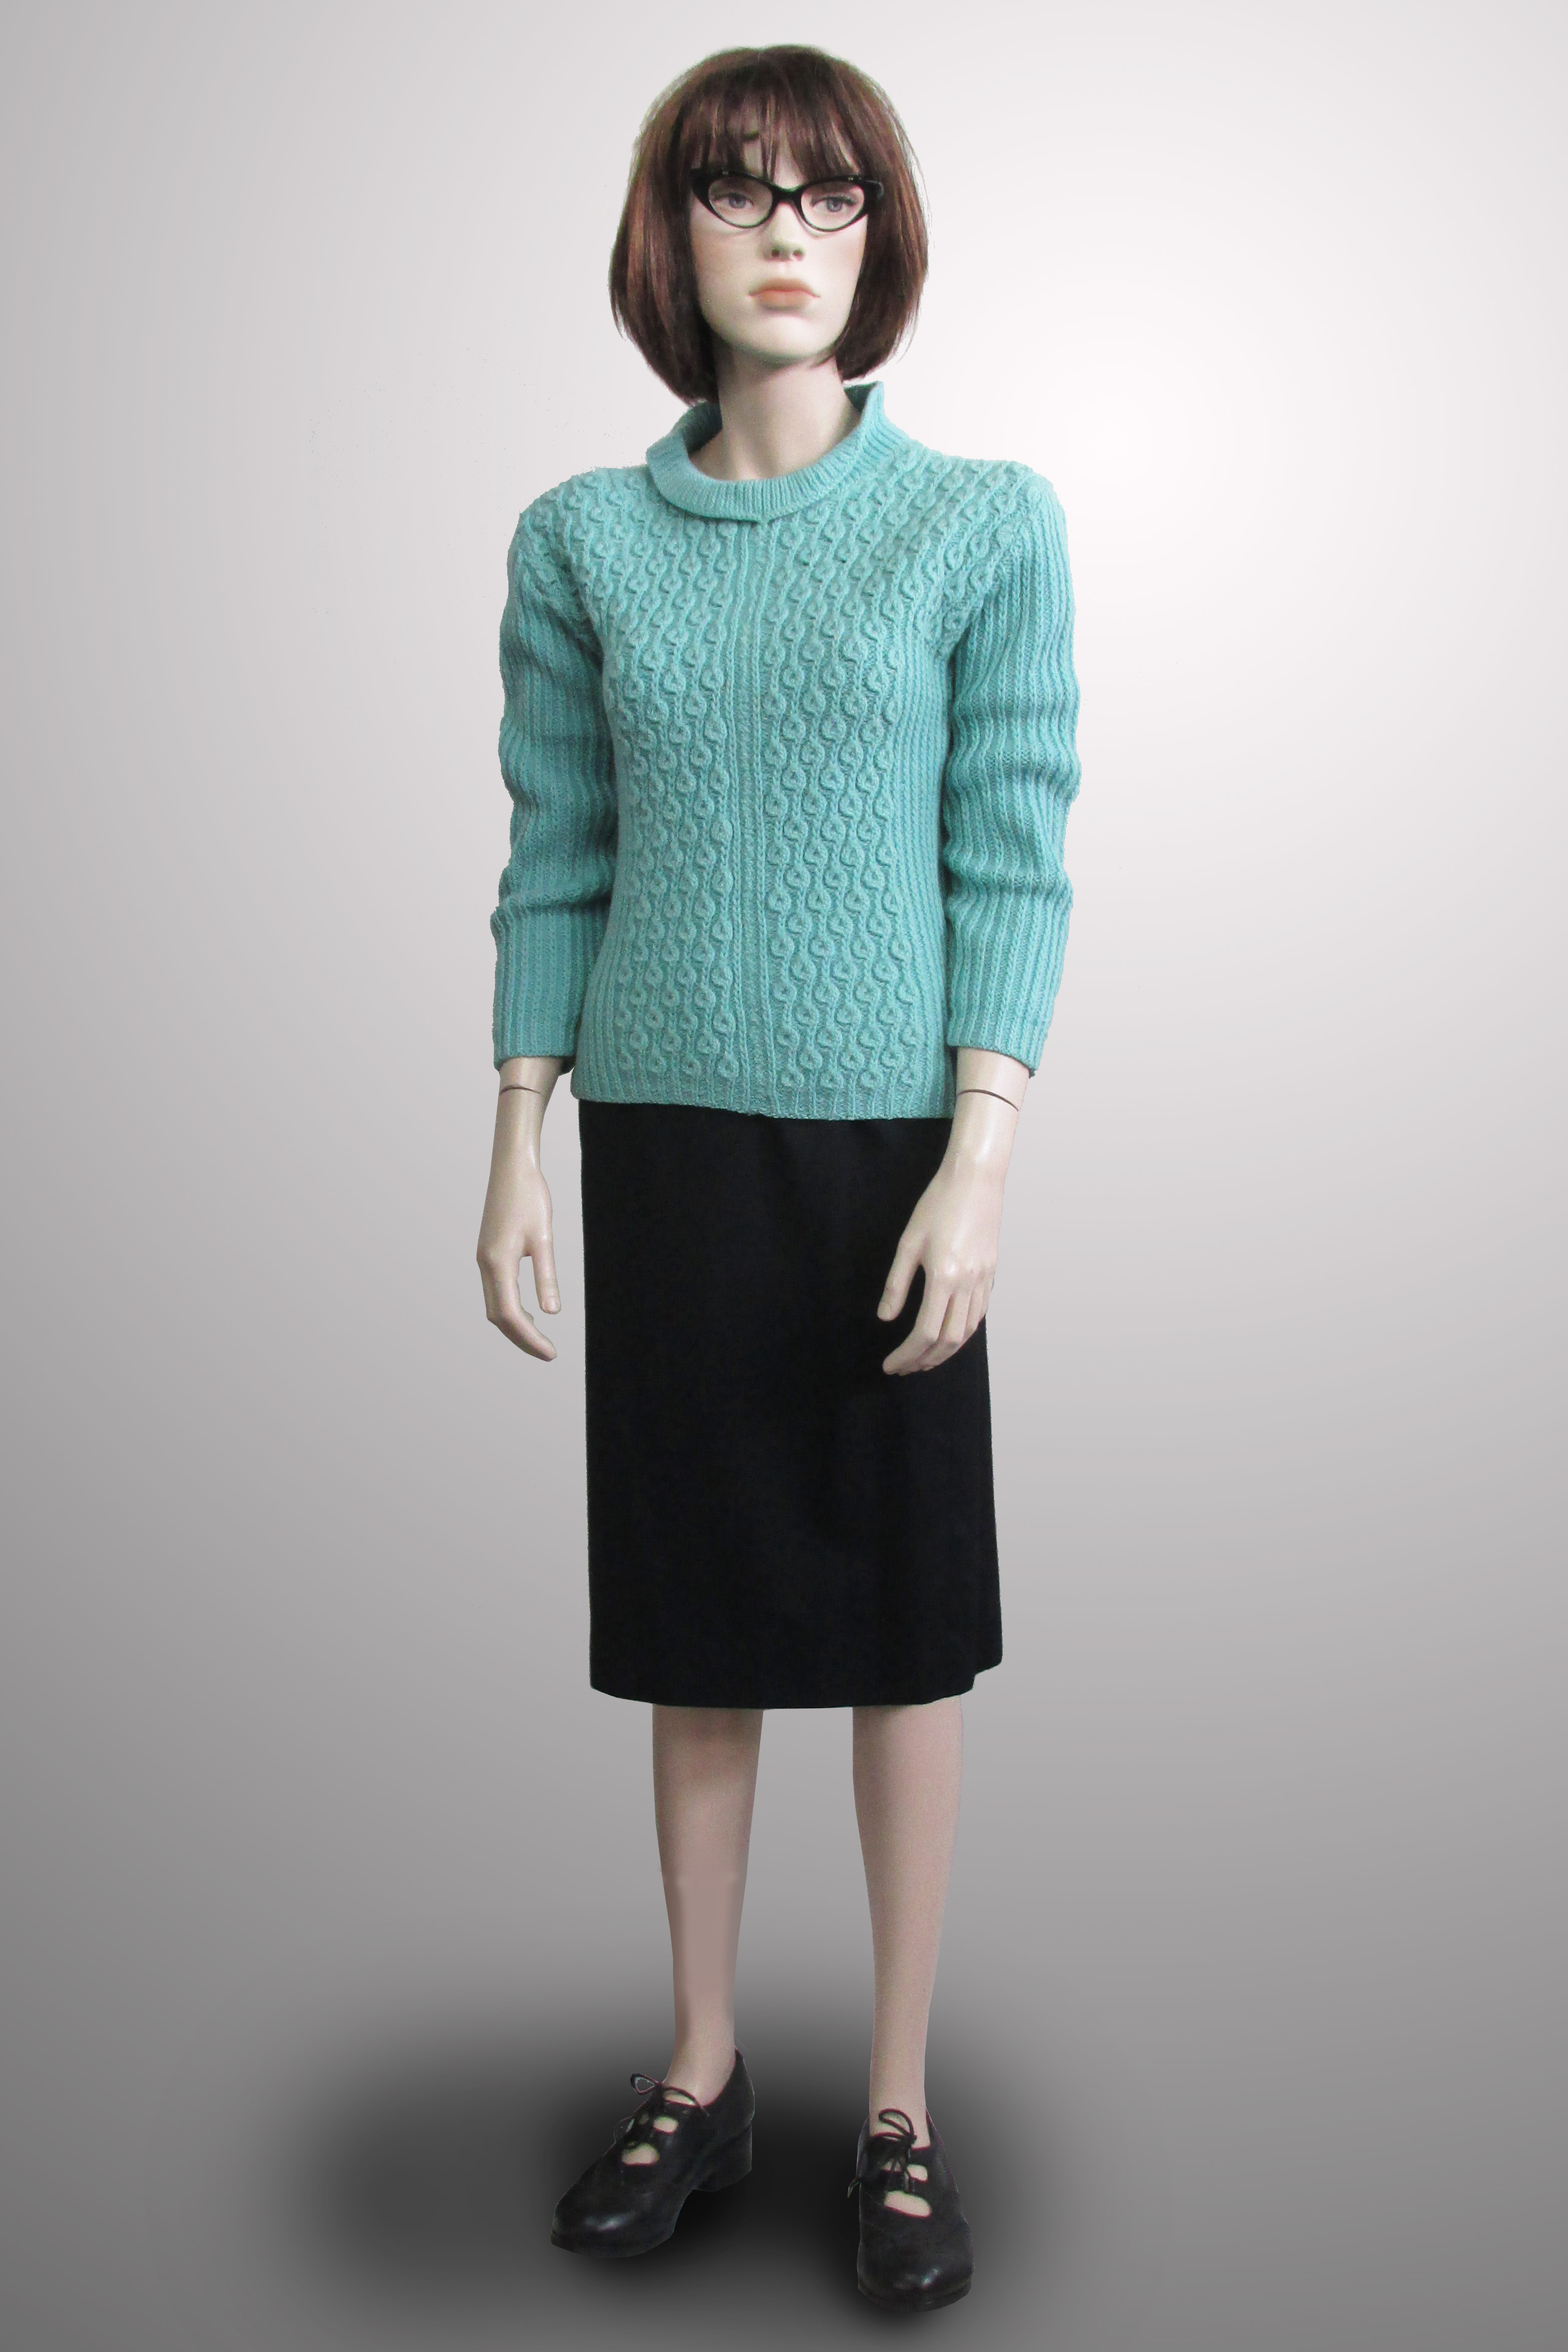 Turquoise Jumper with Black Skirt 1950s/60s